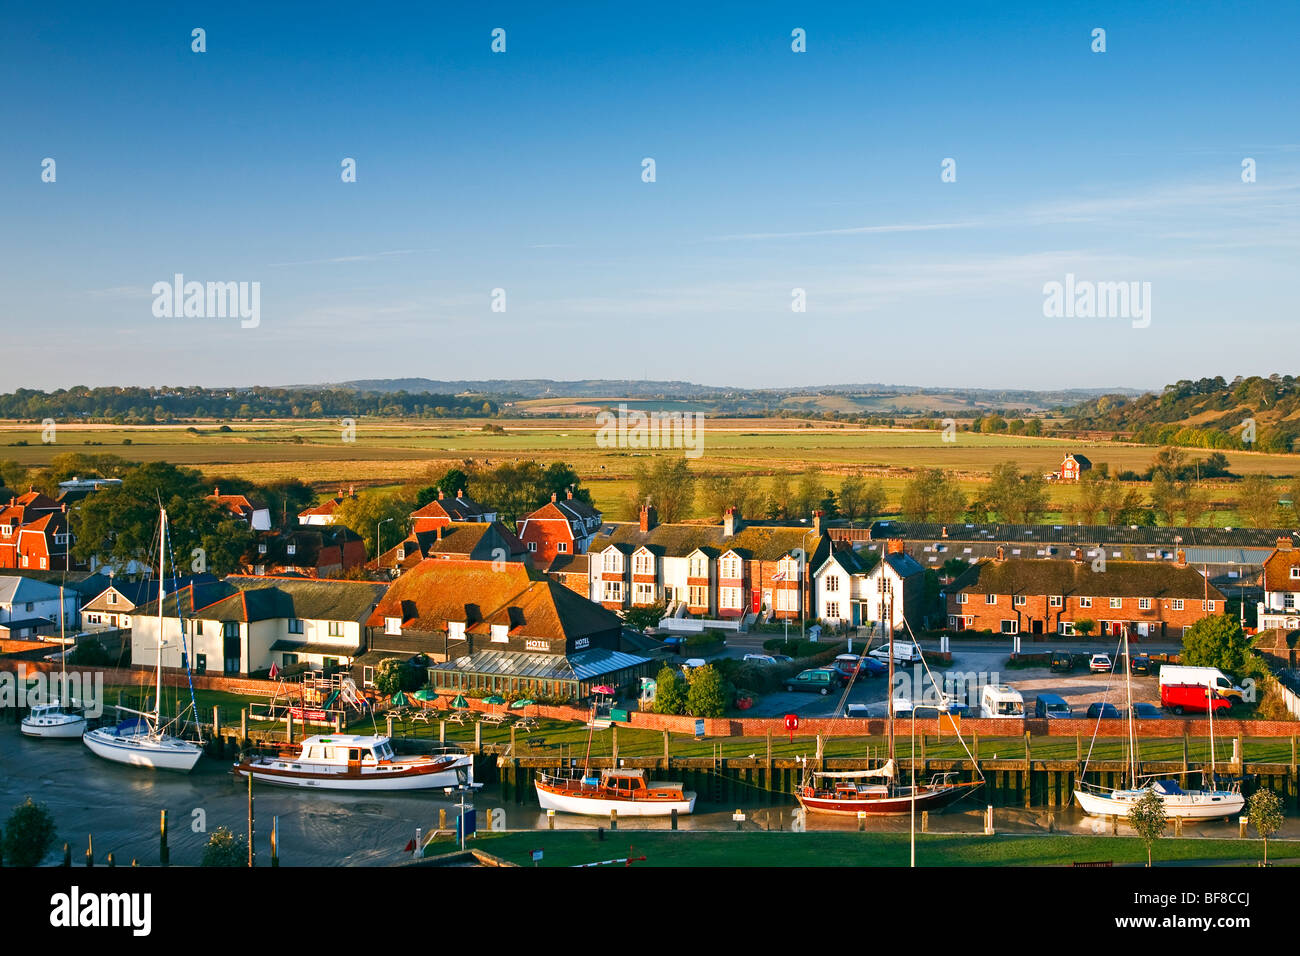 An evening view of Strand Quay and the Sussex countryside beyond from Rye, East Sussex, England, UK 2009 - Stock Image